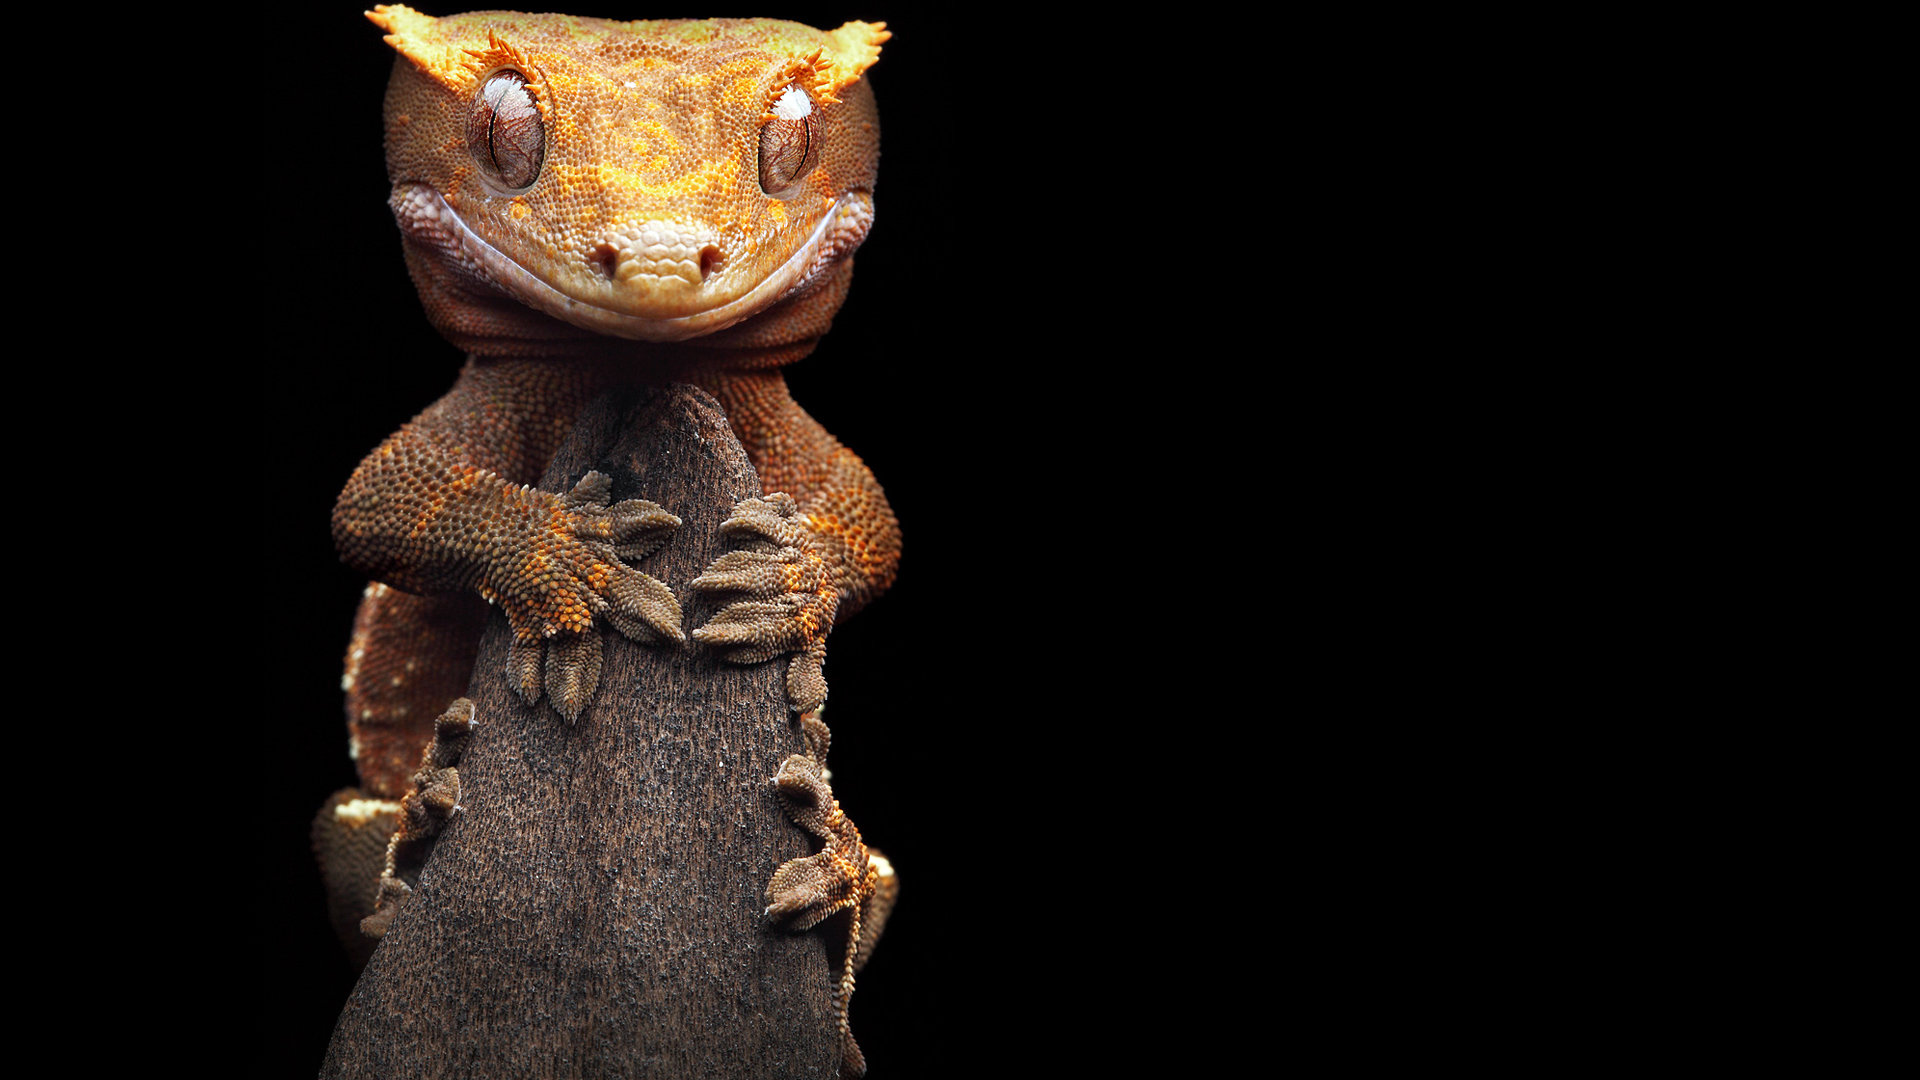 Awesome Gecko free wallpaper ID:114520 for full hd 1080p desktop